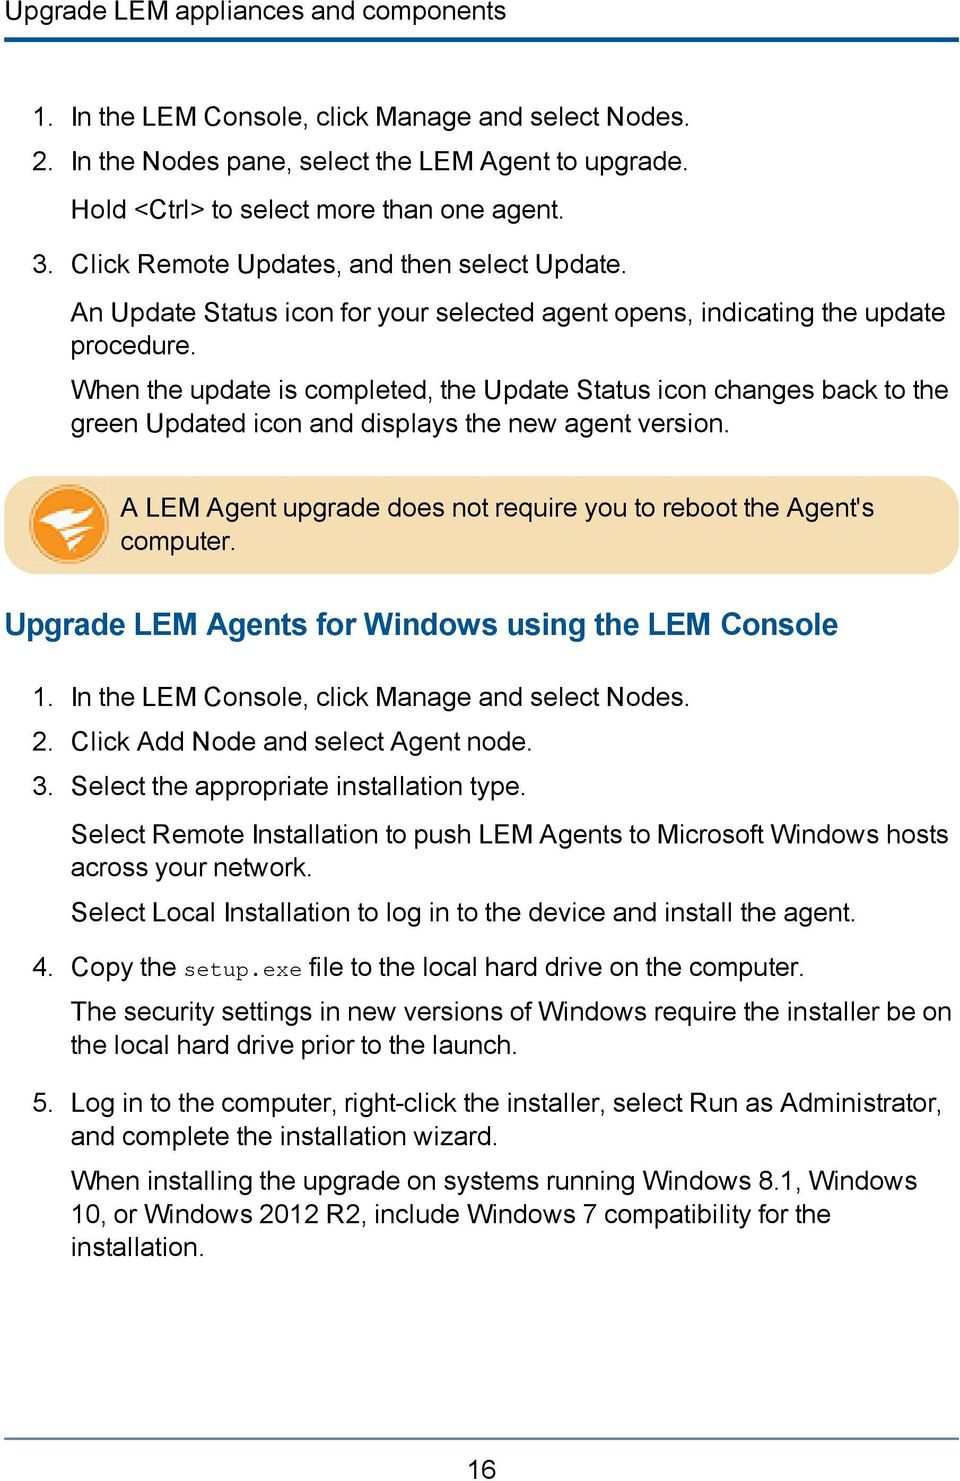 When the update is completed, the Update Status icon changes back to the green Updated icon and displays the new agent version. A LEM Agent upgrade does not require you to reboot the Agent's computer.